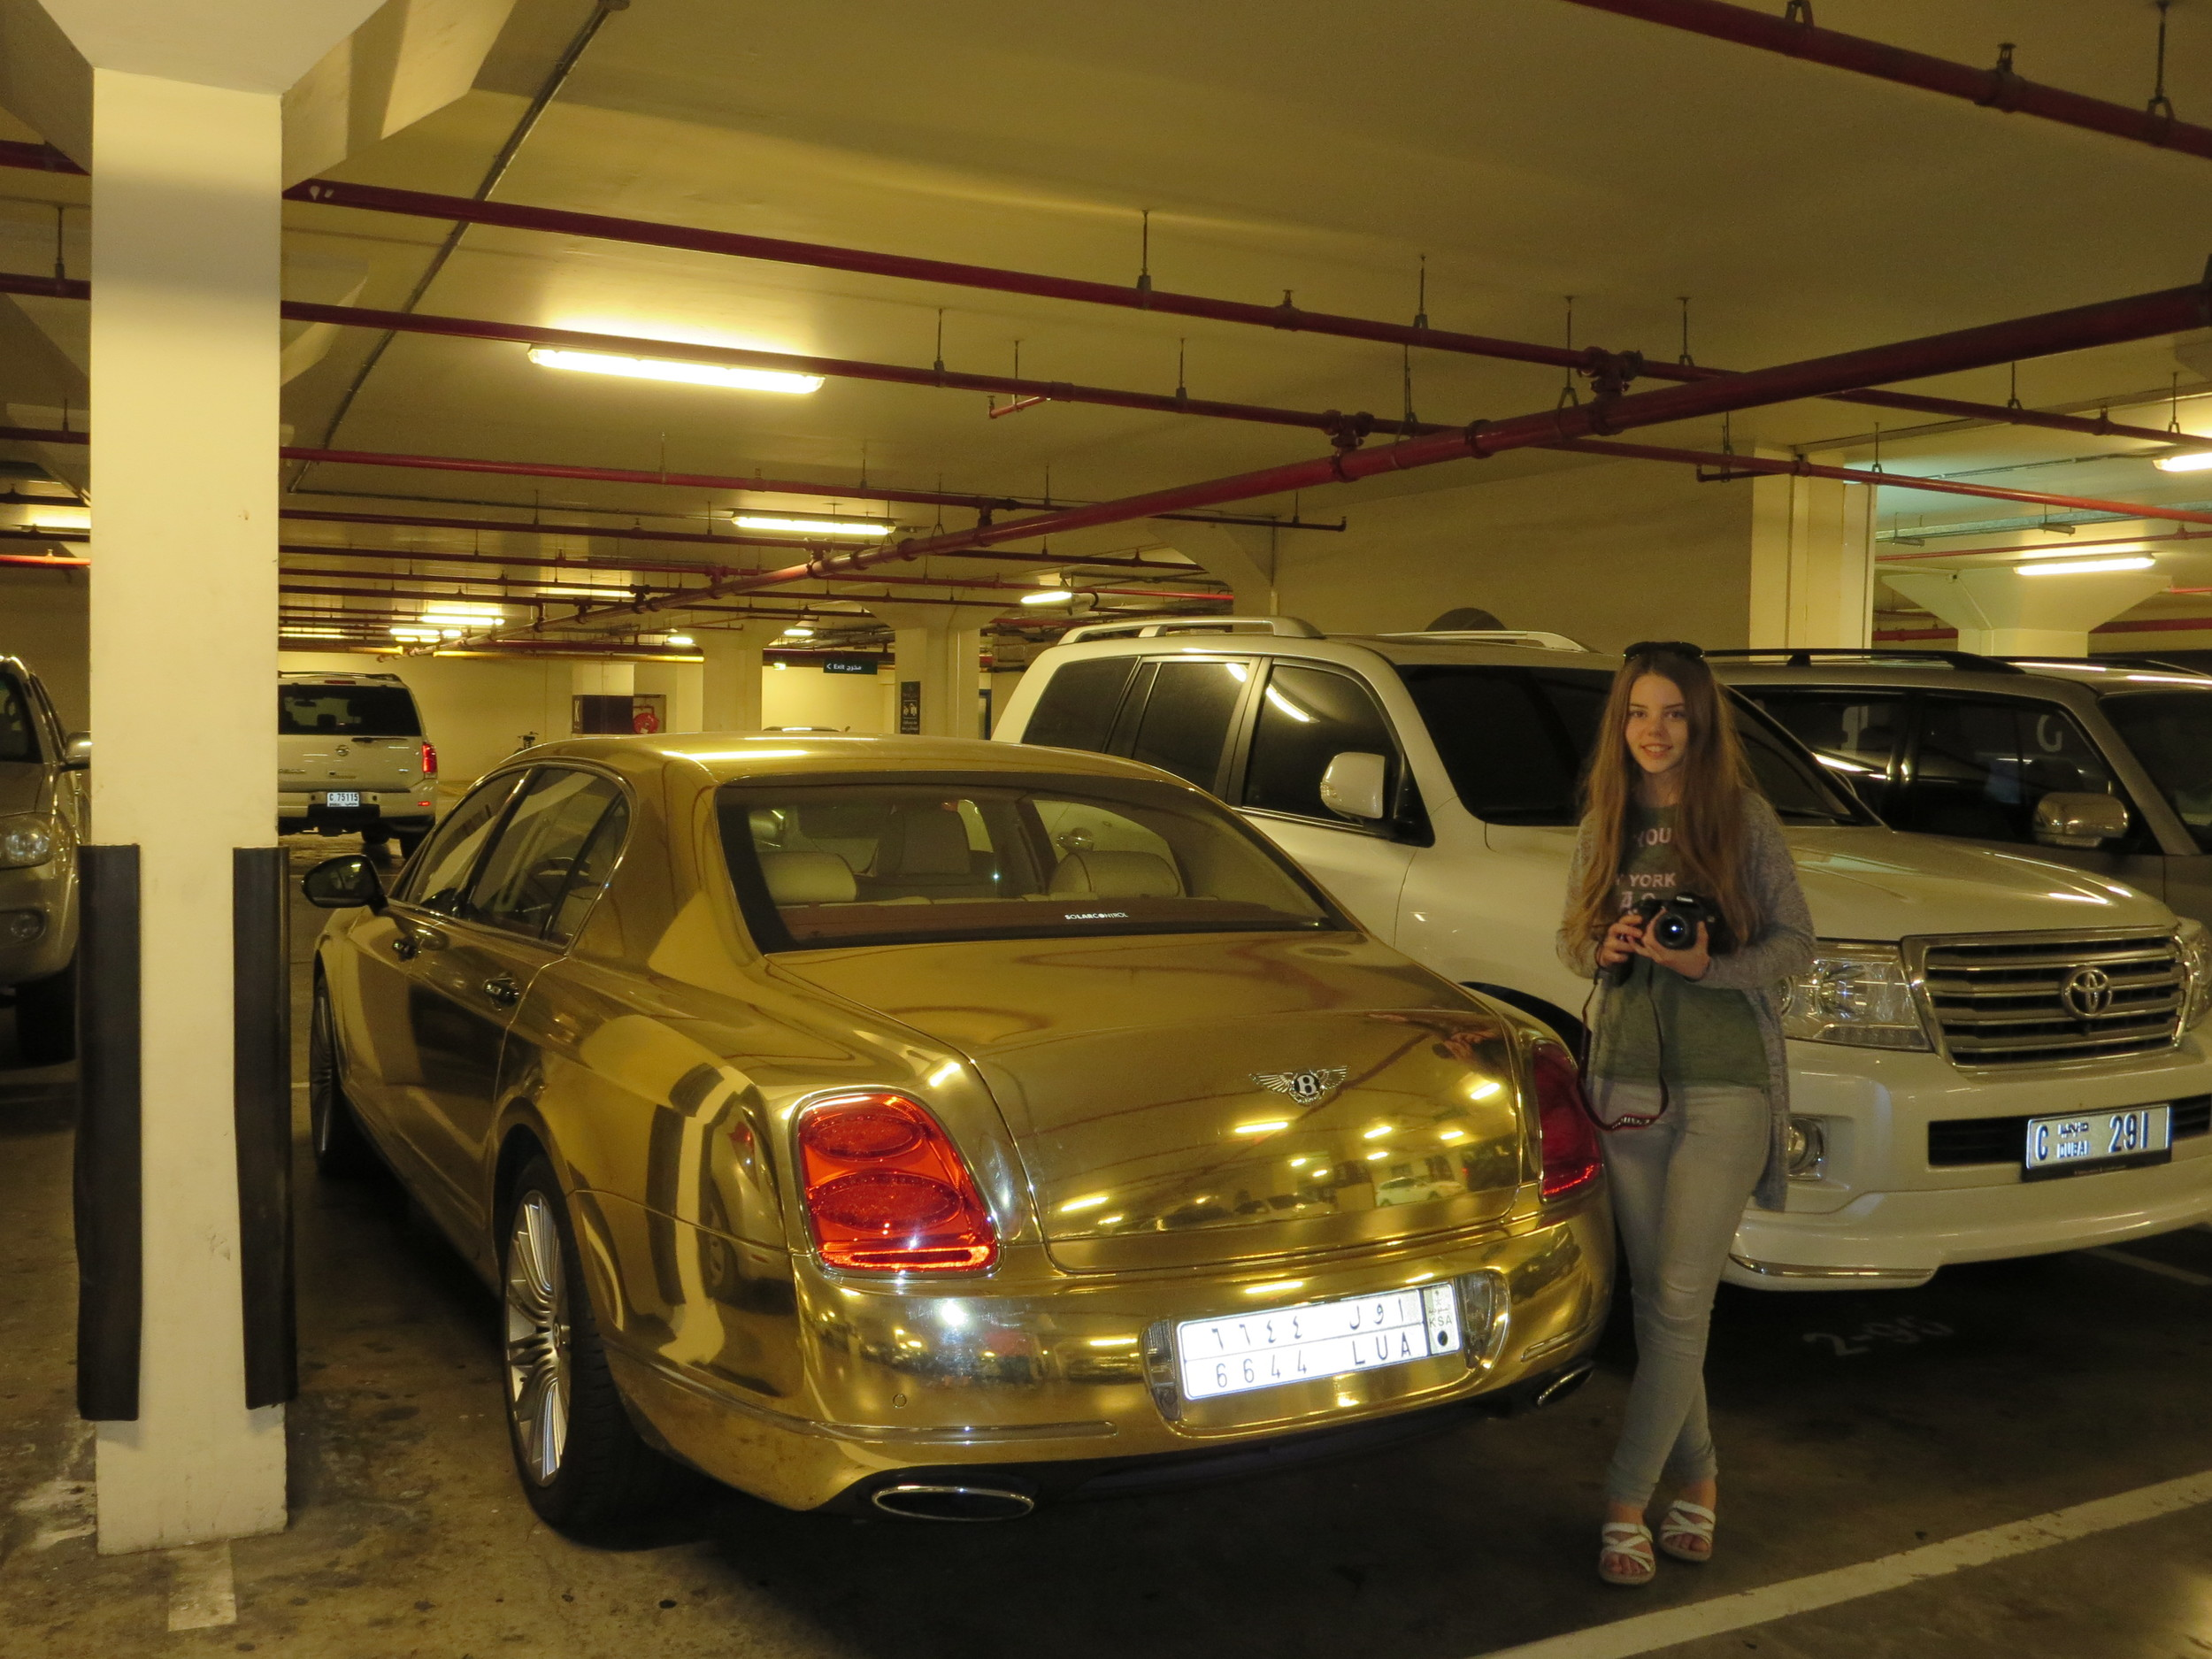 Dubai is the place if you want to drive a golden Bentley